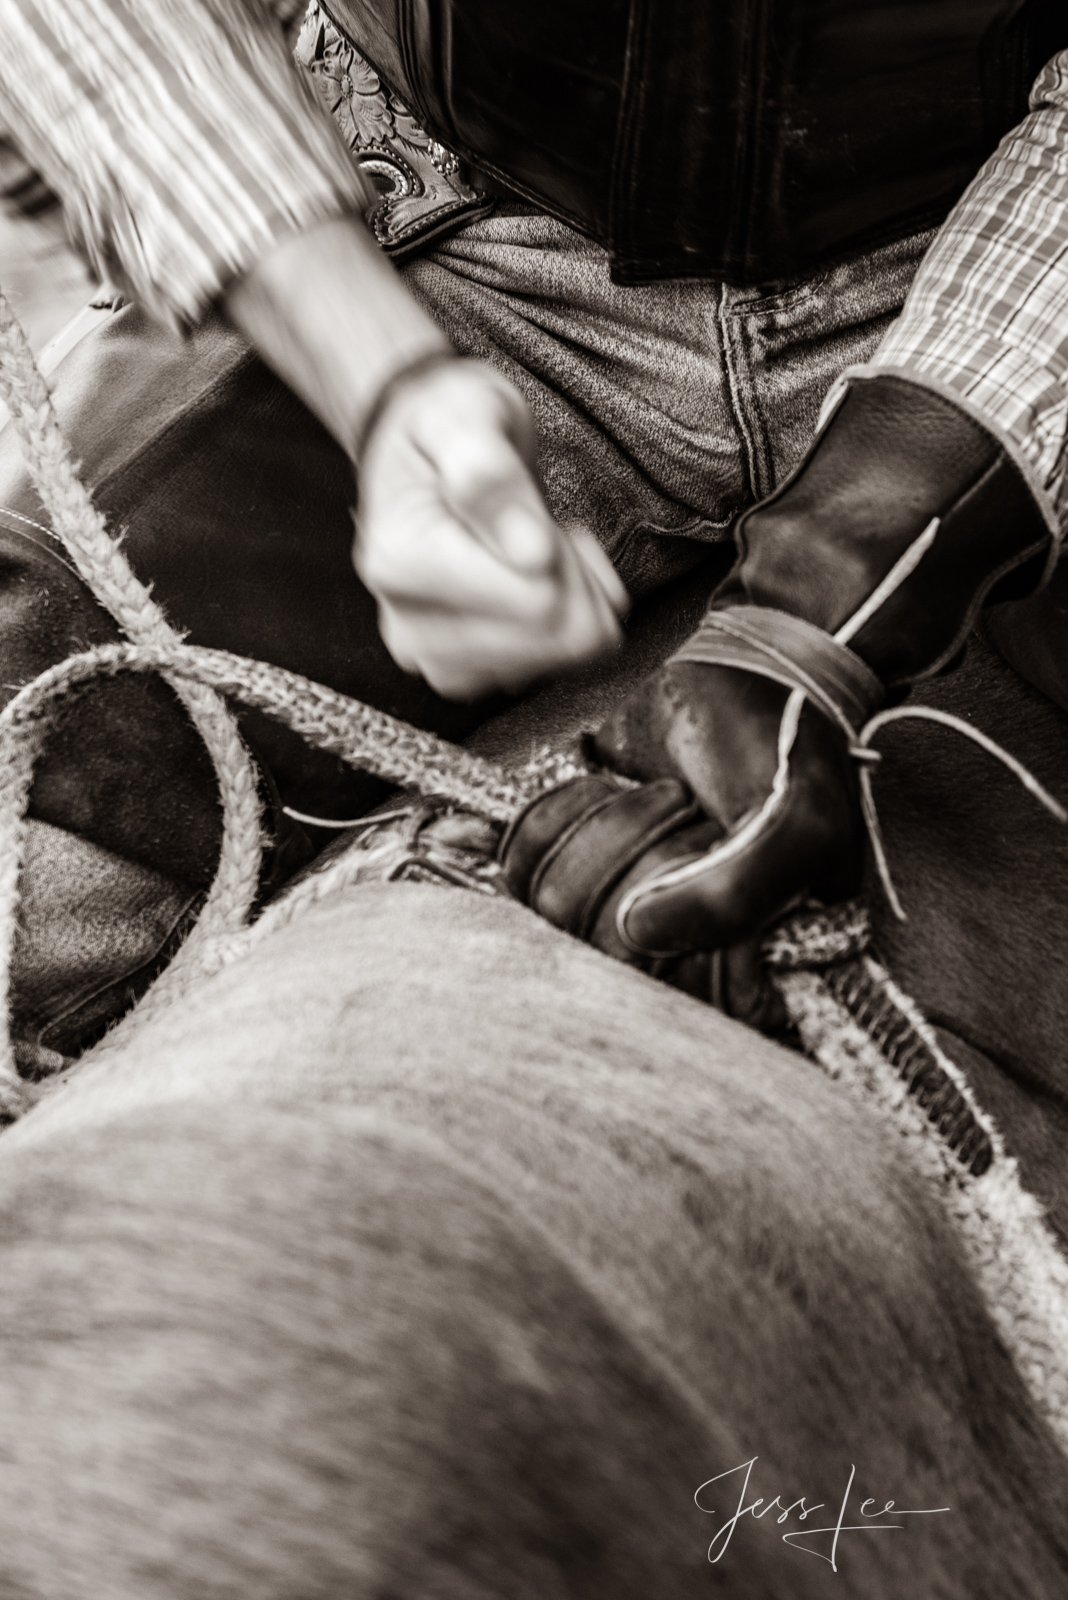 Bull rider hitting his hands to tighten his grip on the rope.